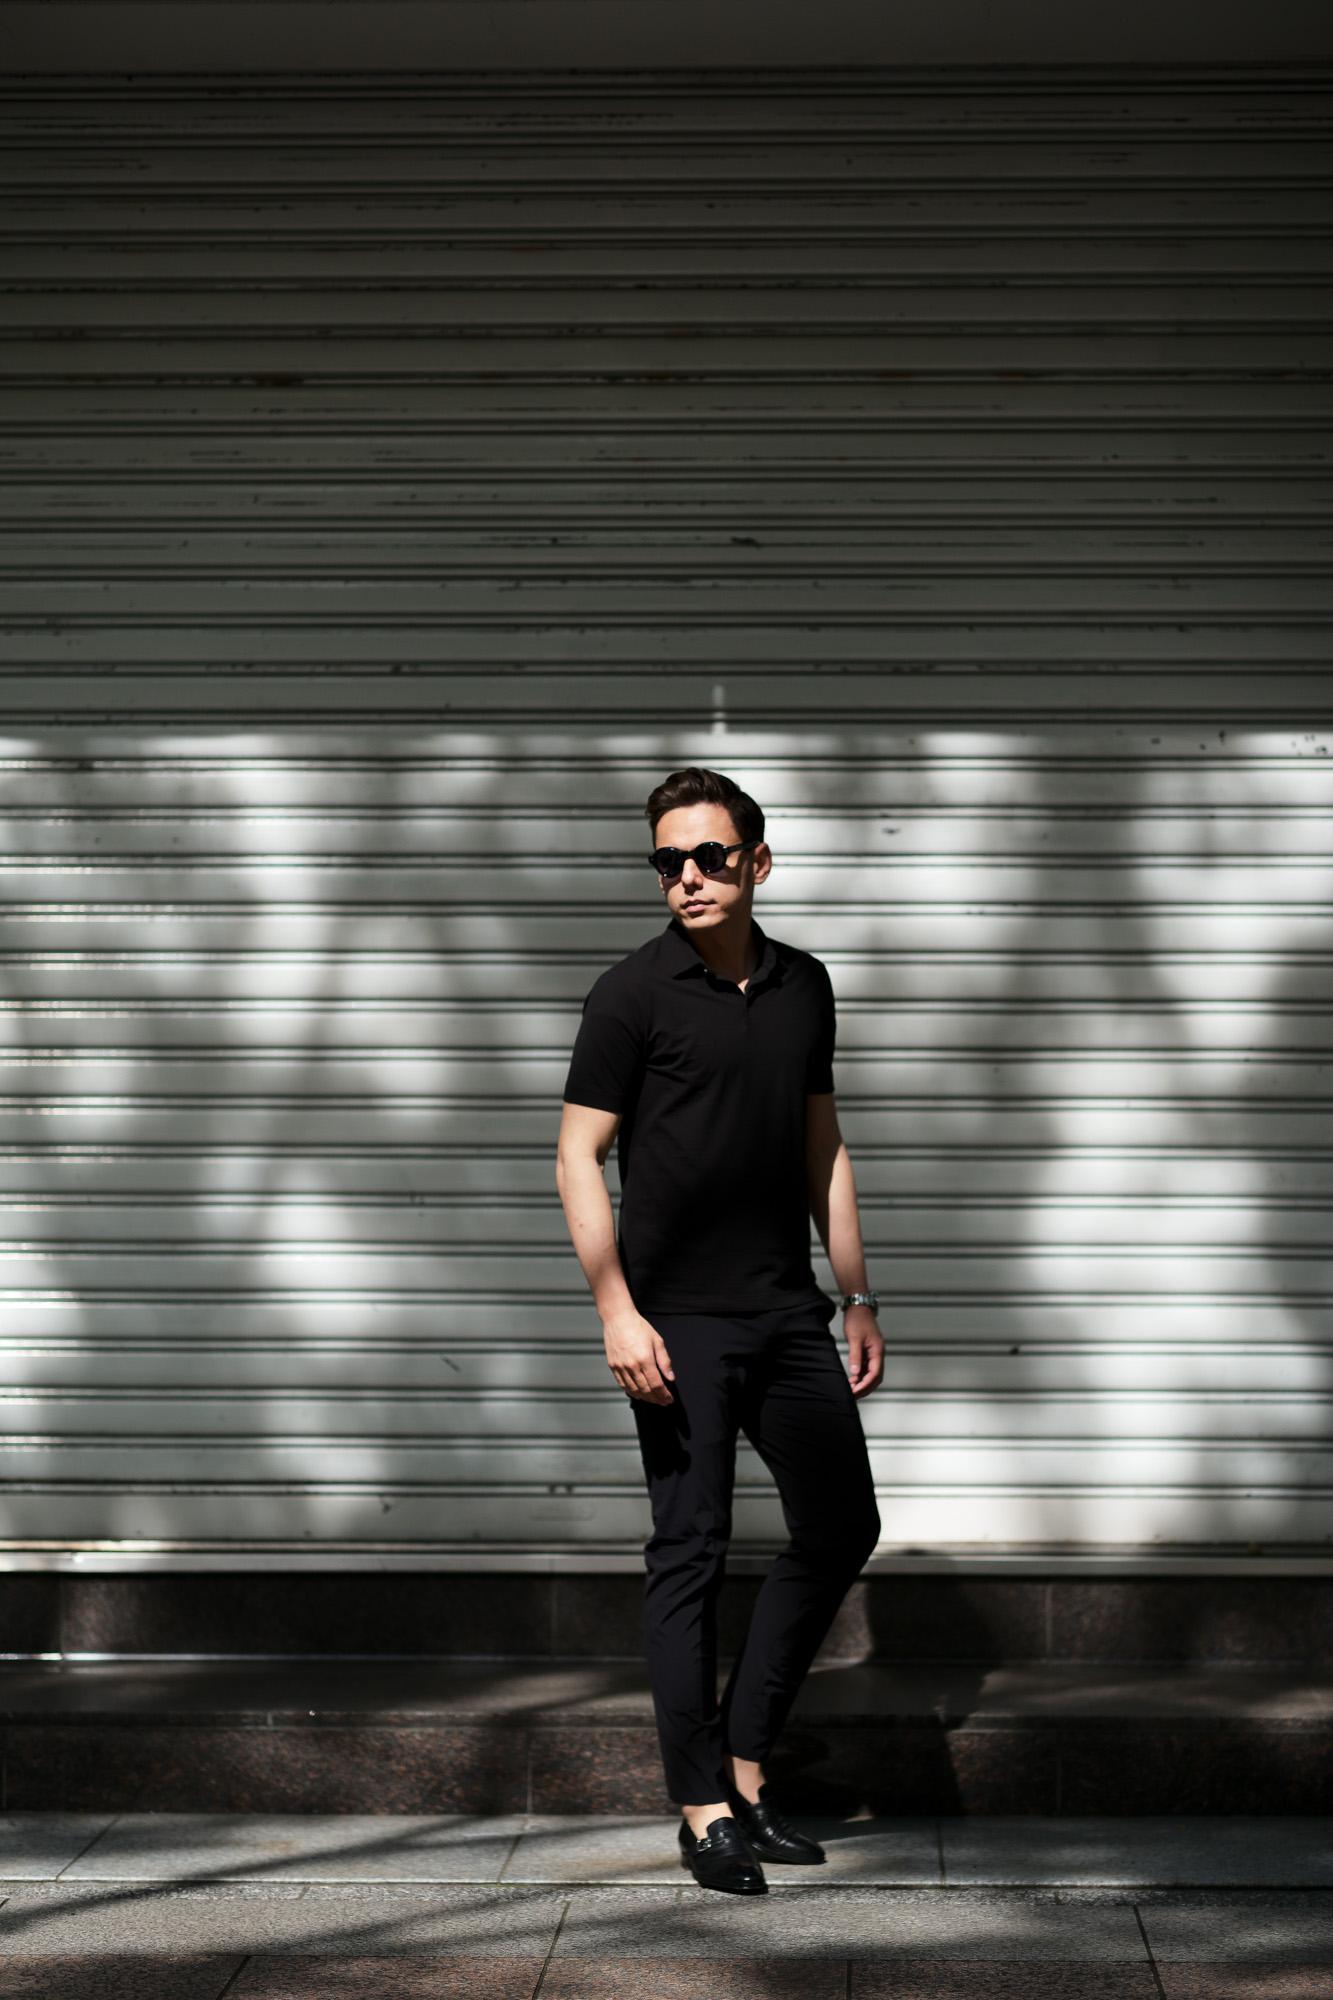 ZANONE(ザノーネ) Polo Shirt ice cotton アイスコットン ポロシャツ BLACK (ブラック・Z0015) made in italy (イタリア製) 2020春夏新作 愛知 名古屋 altoediritto アルトエデリット